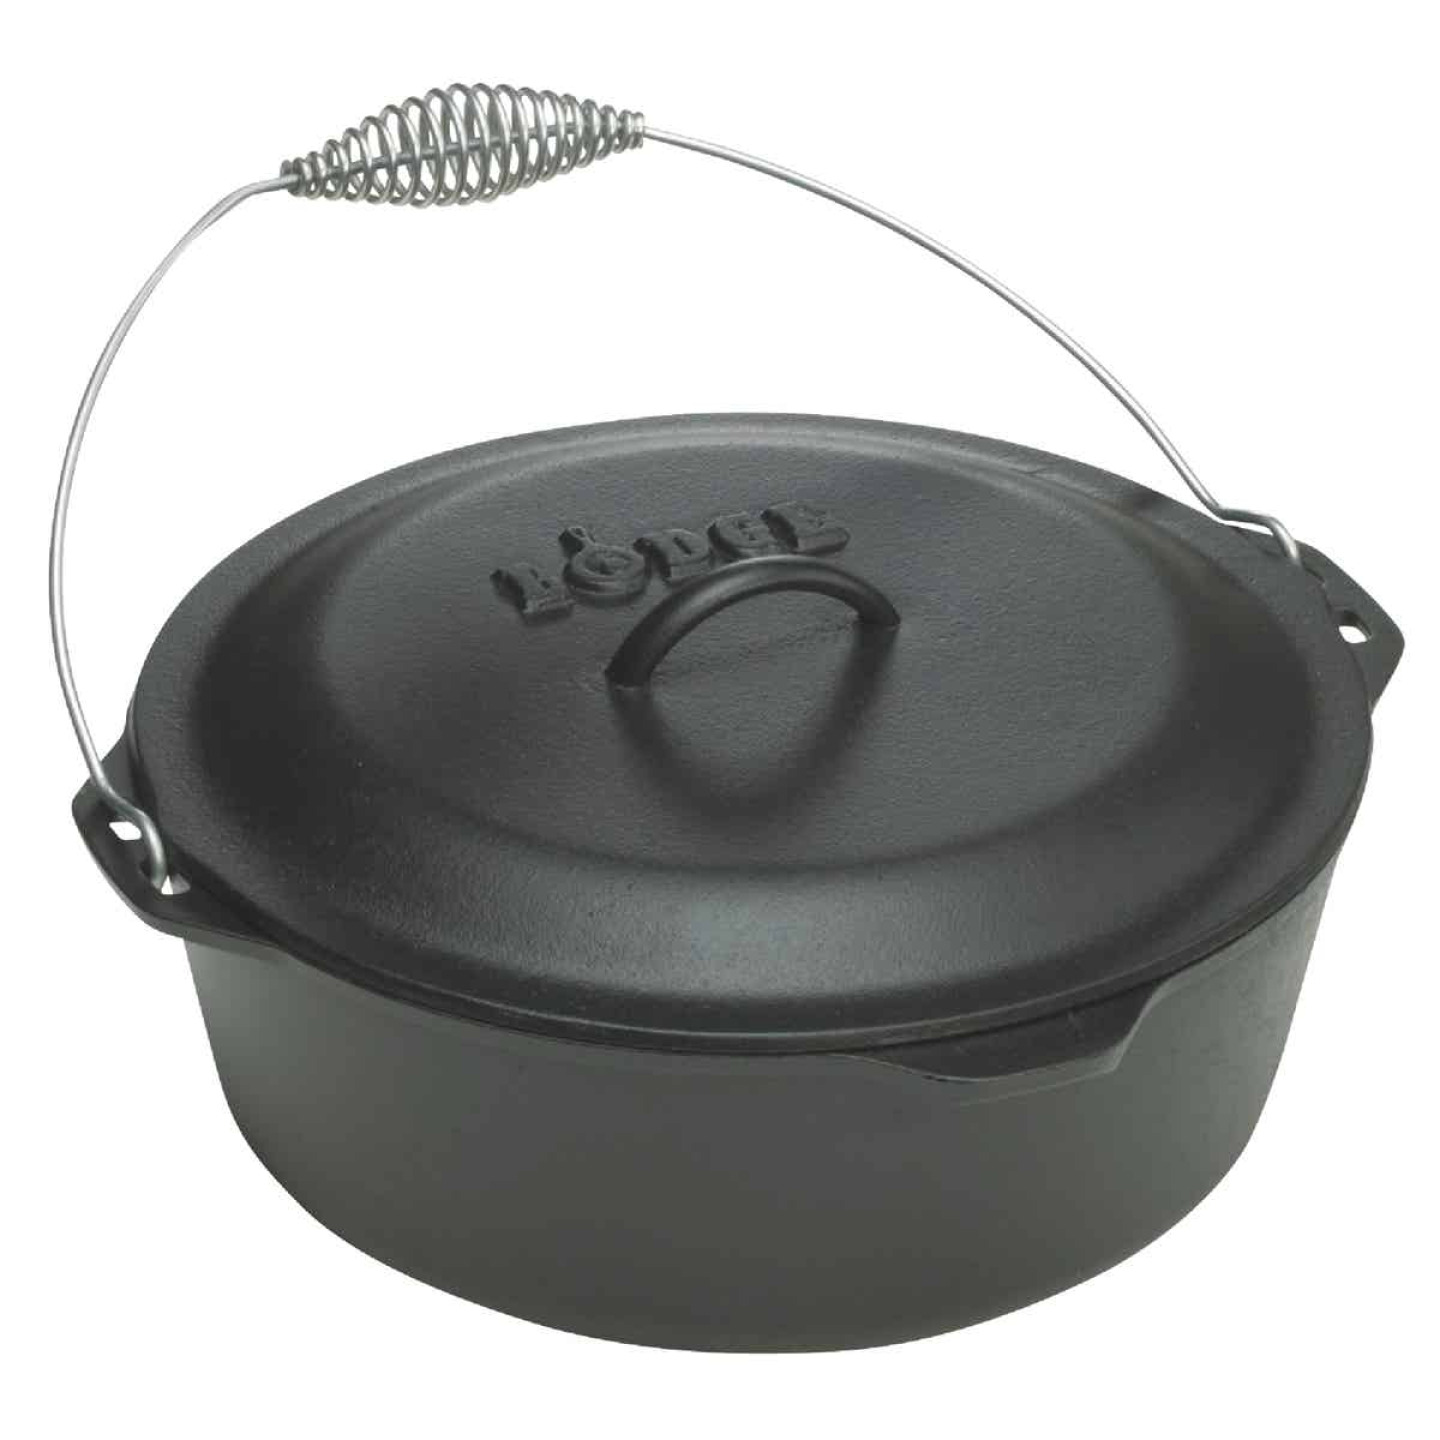 Lodge 9 Qt. Dutch Oven With Iron Cover Image 1